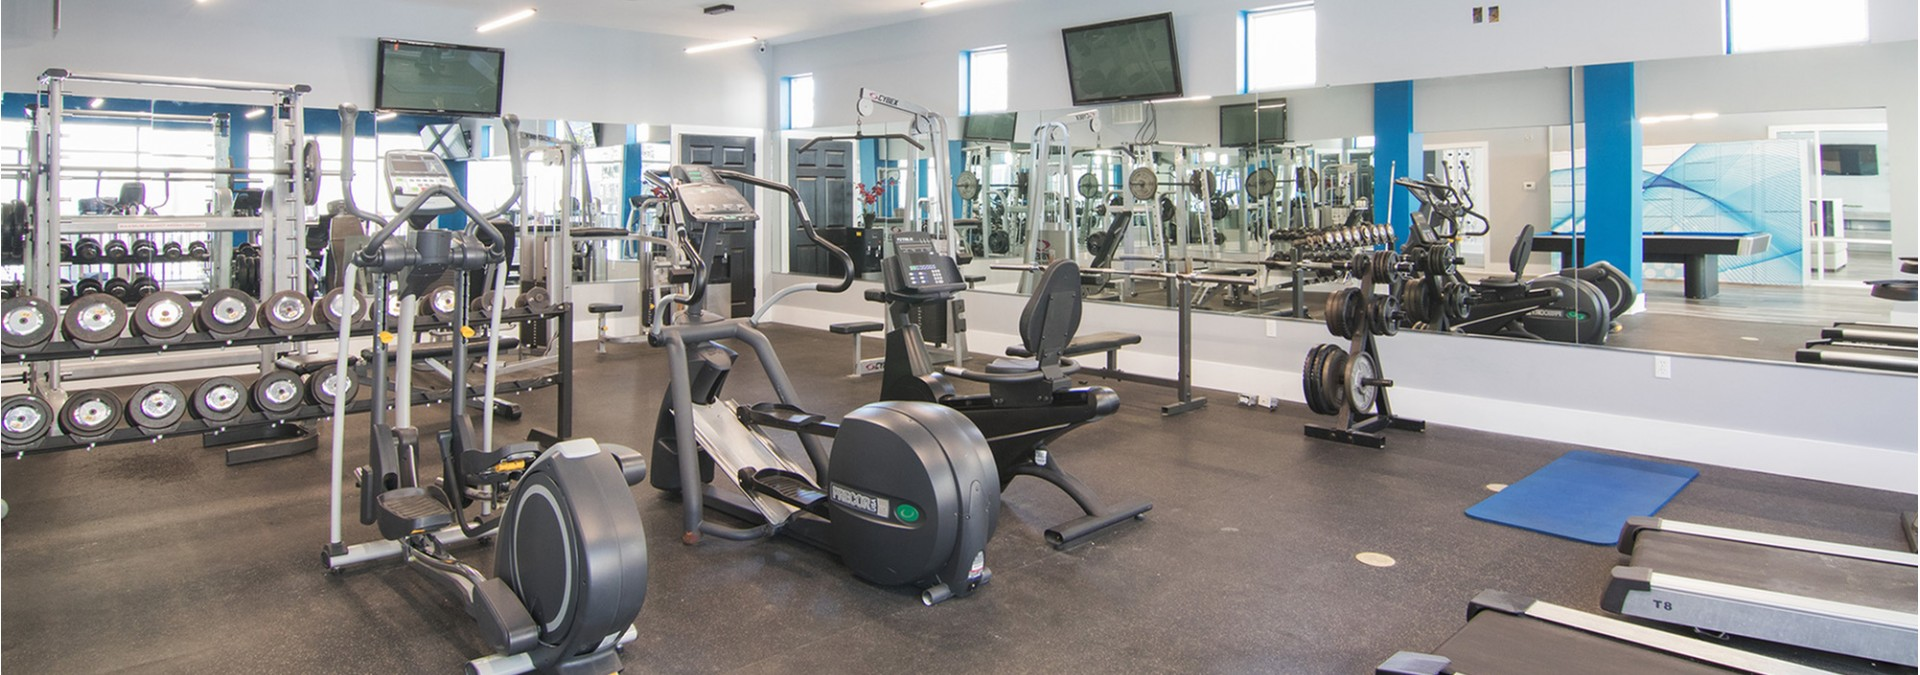 Cutting Edge Fitness Center | Pet Friendly Apartments In Tallahassee | The Venetian Student Living 1